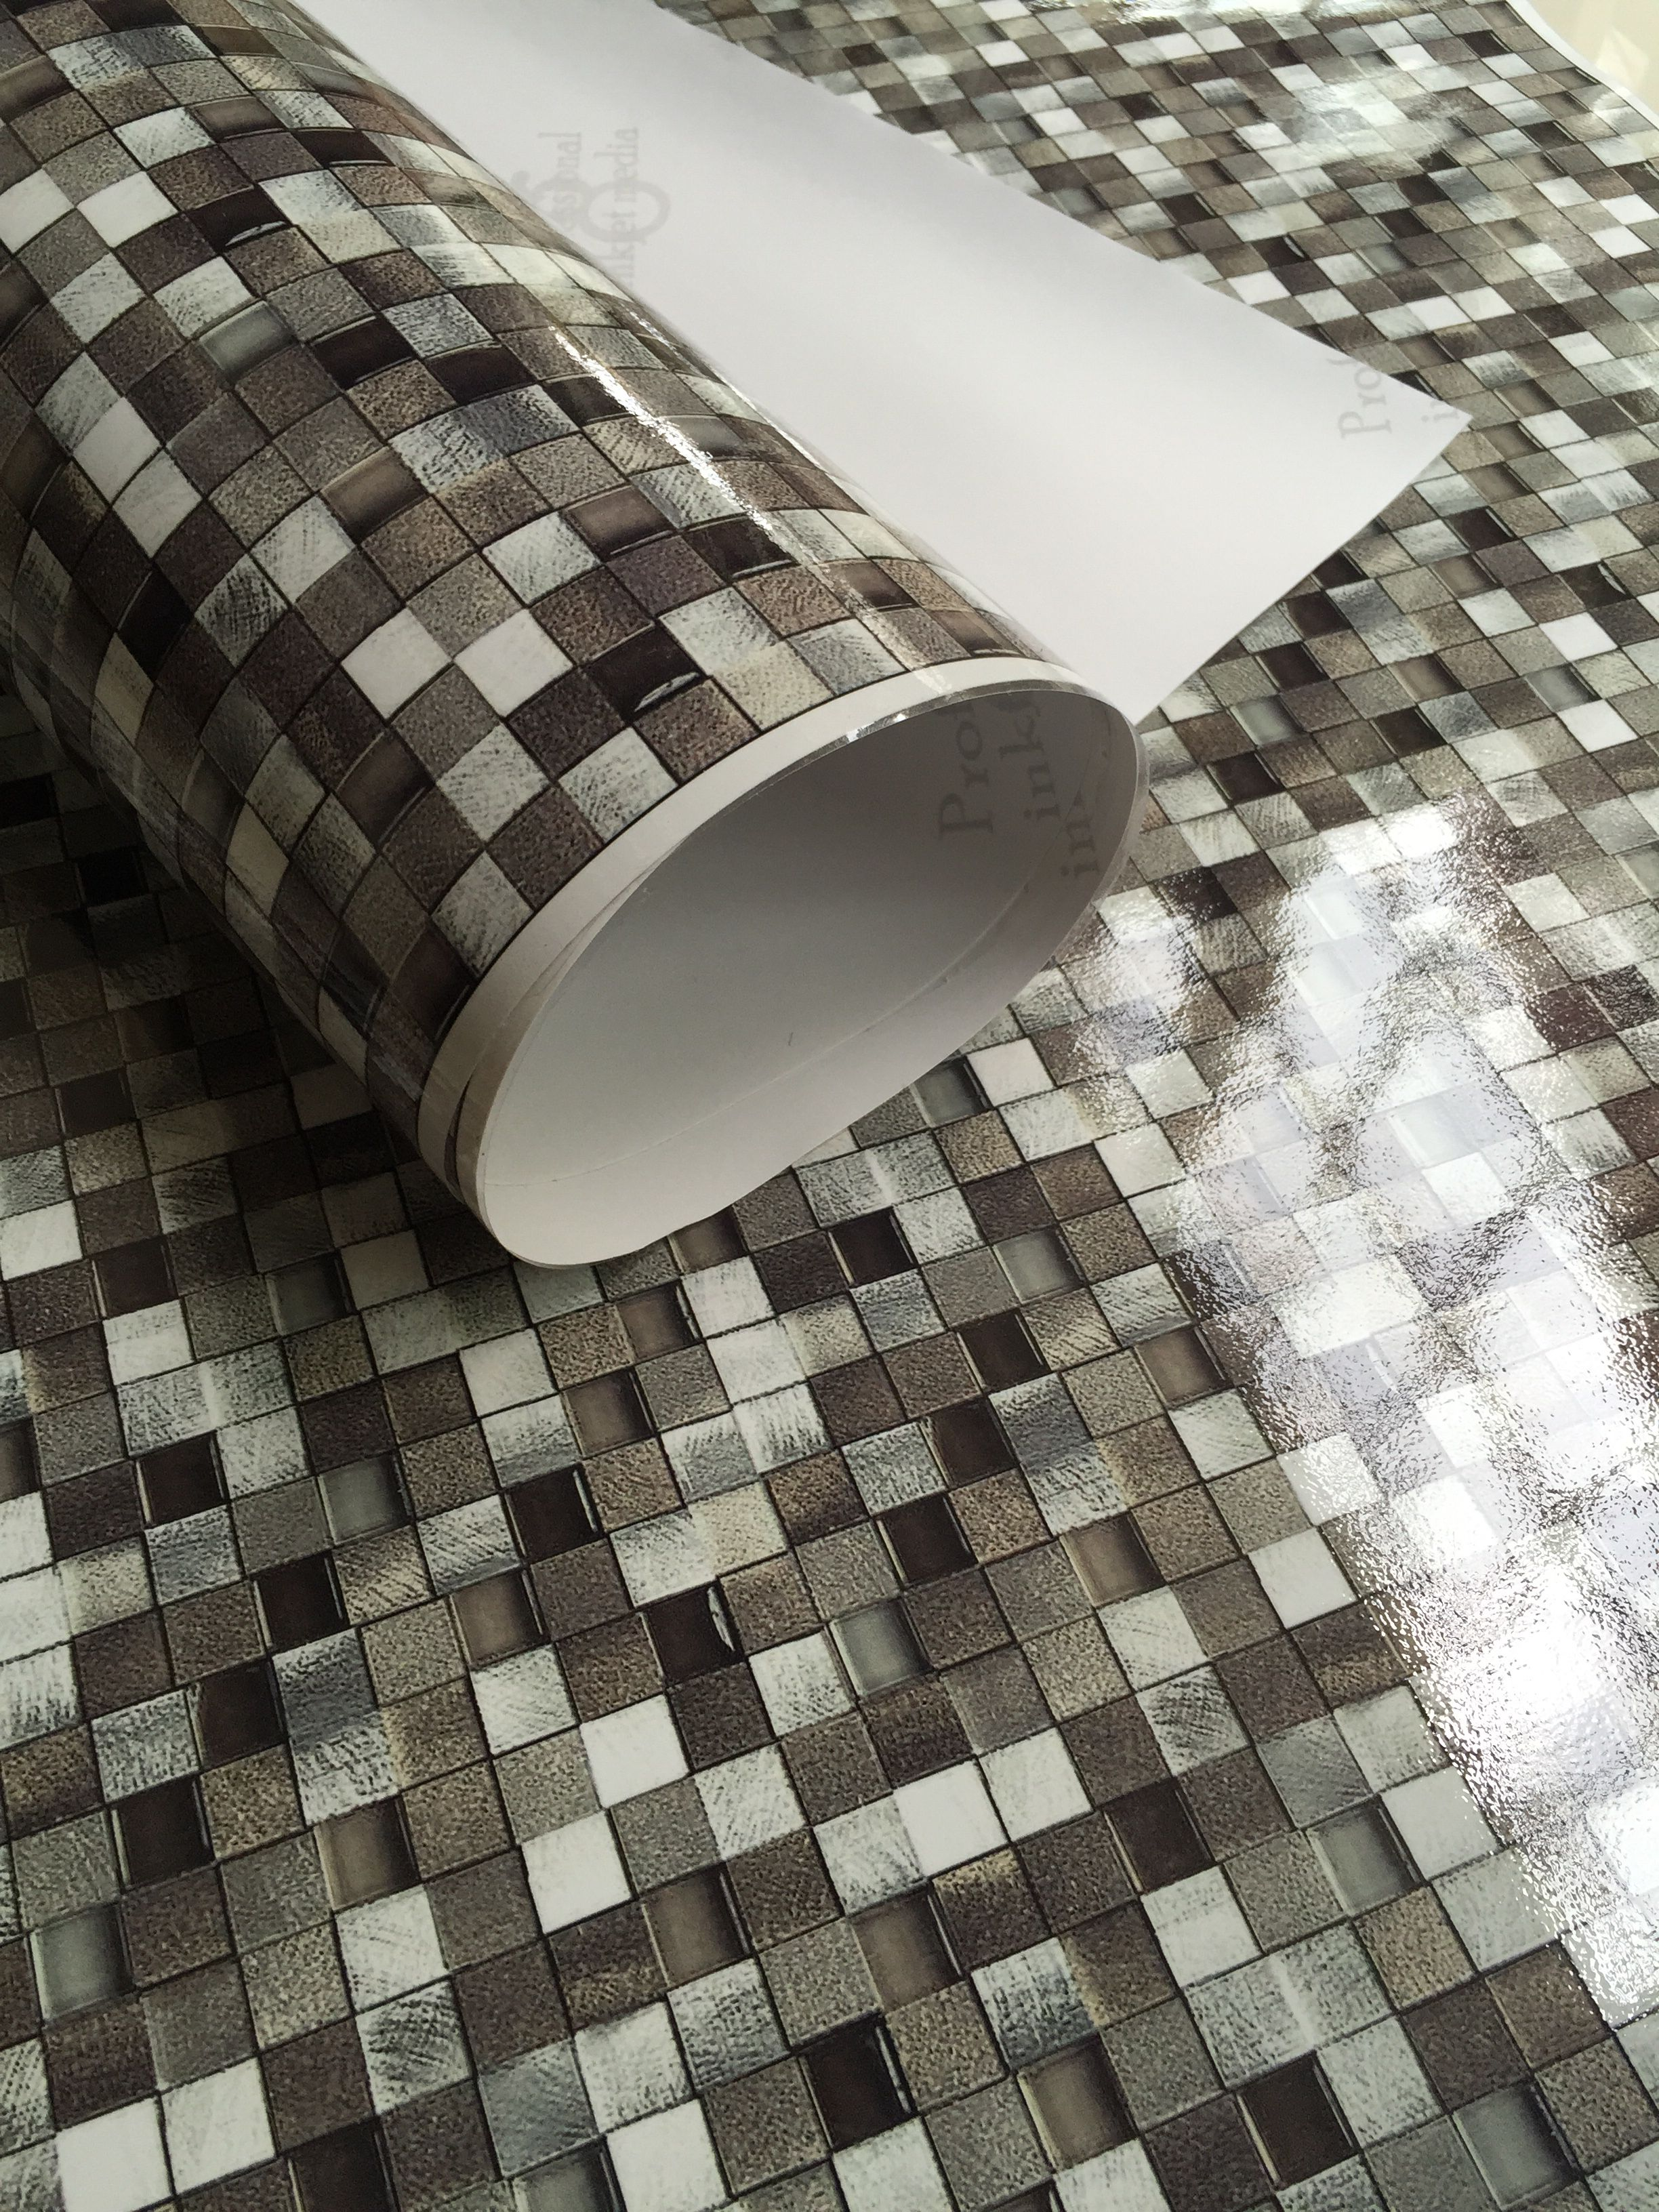 Peel and stick mosaic tile vinyl wallpaper. Waterproof